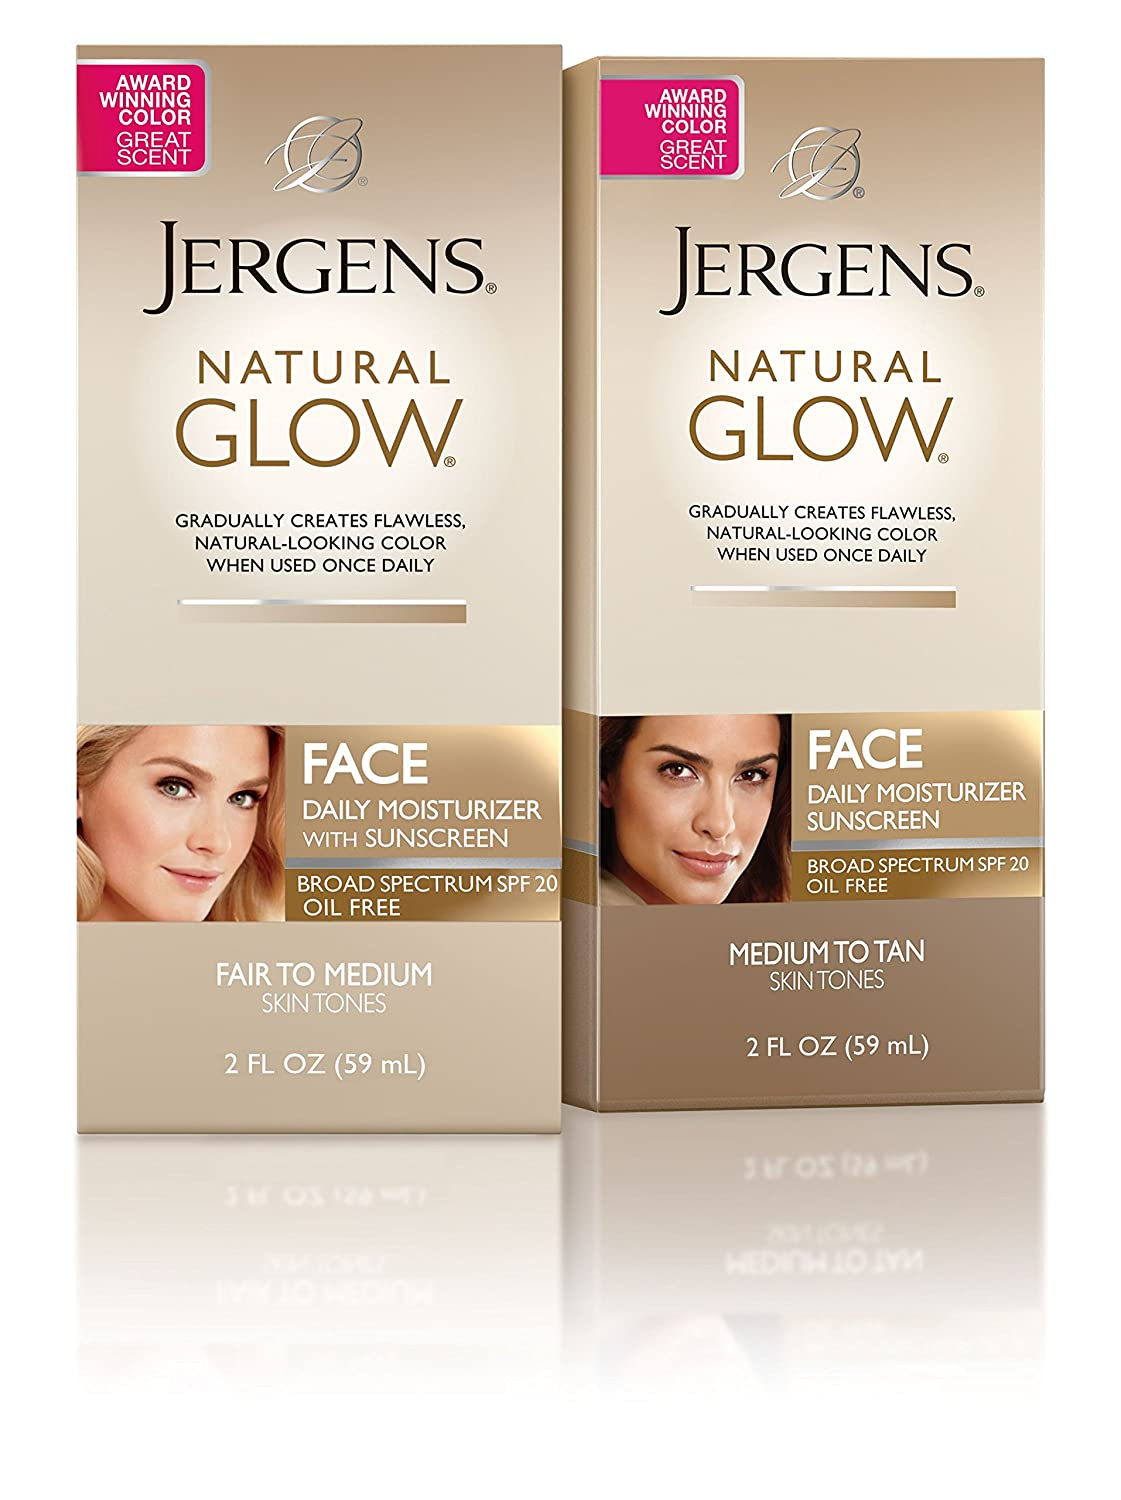 Jergens Natural Glow Oil-free SPF 20 Face Moisturizer, Self Tanner, Medium to Tan Skin Tone Sunless Tanning, 2 Ounce Daily Facial Sunscreen, Featuring Broad Spectrum Protection Across UVA and UVB: Beauty